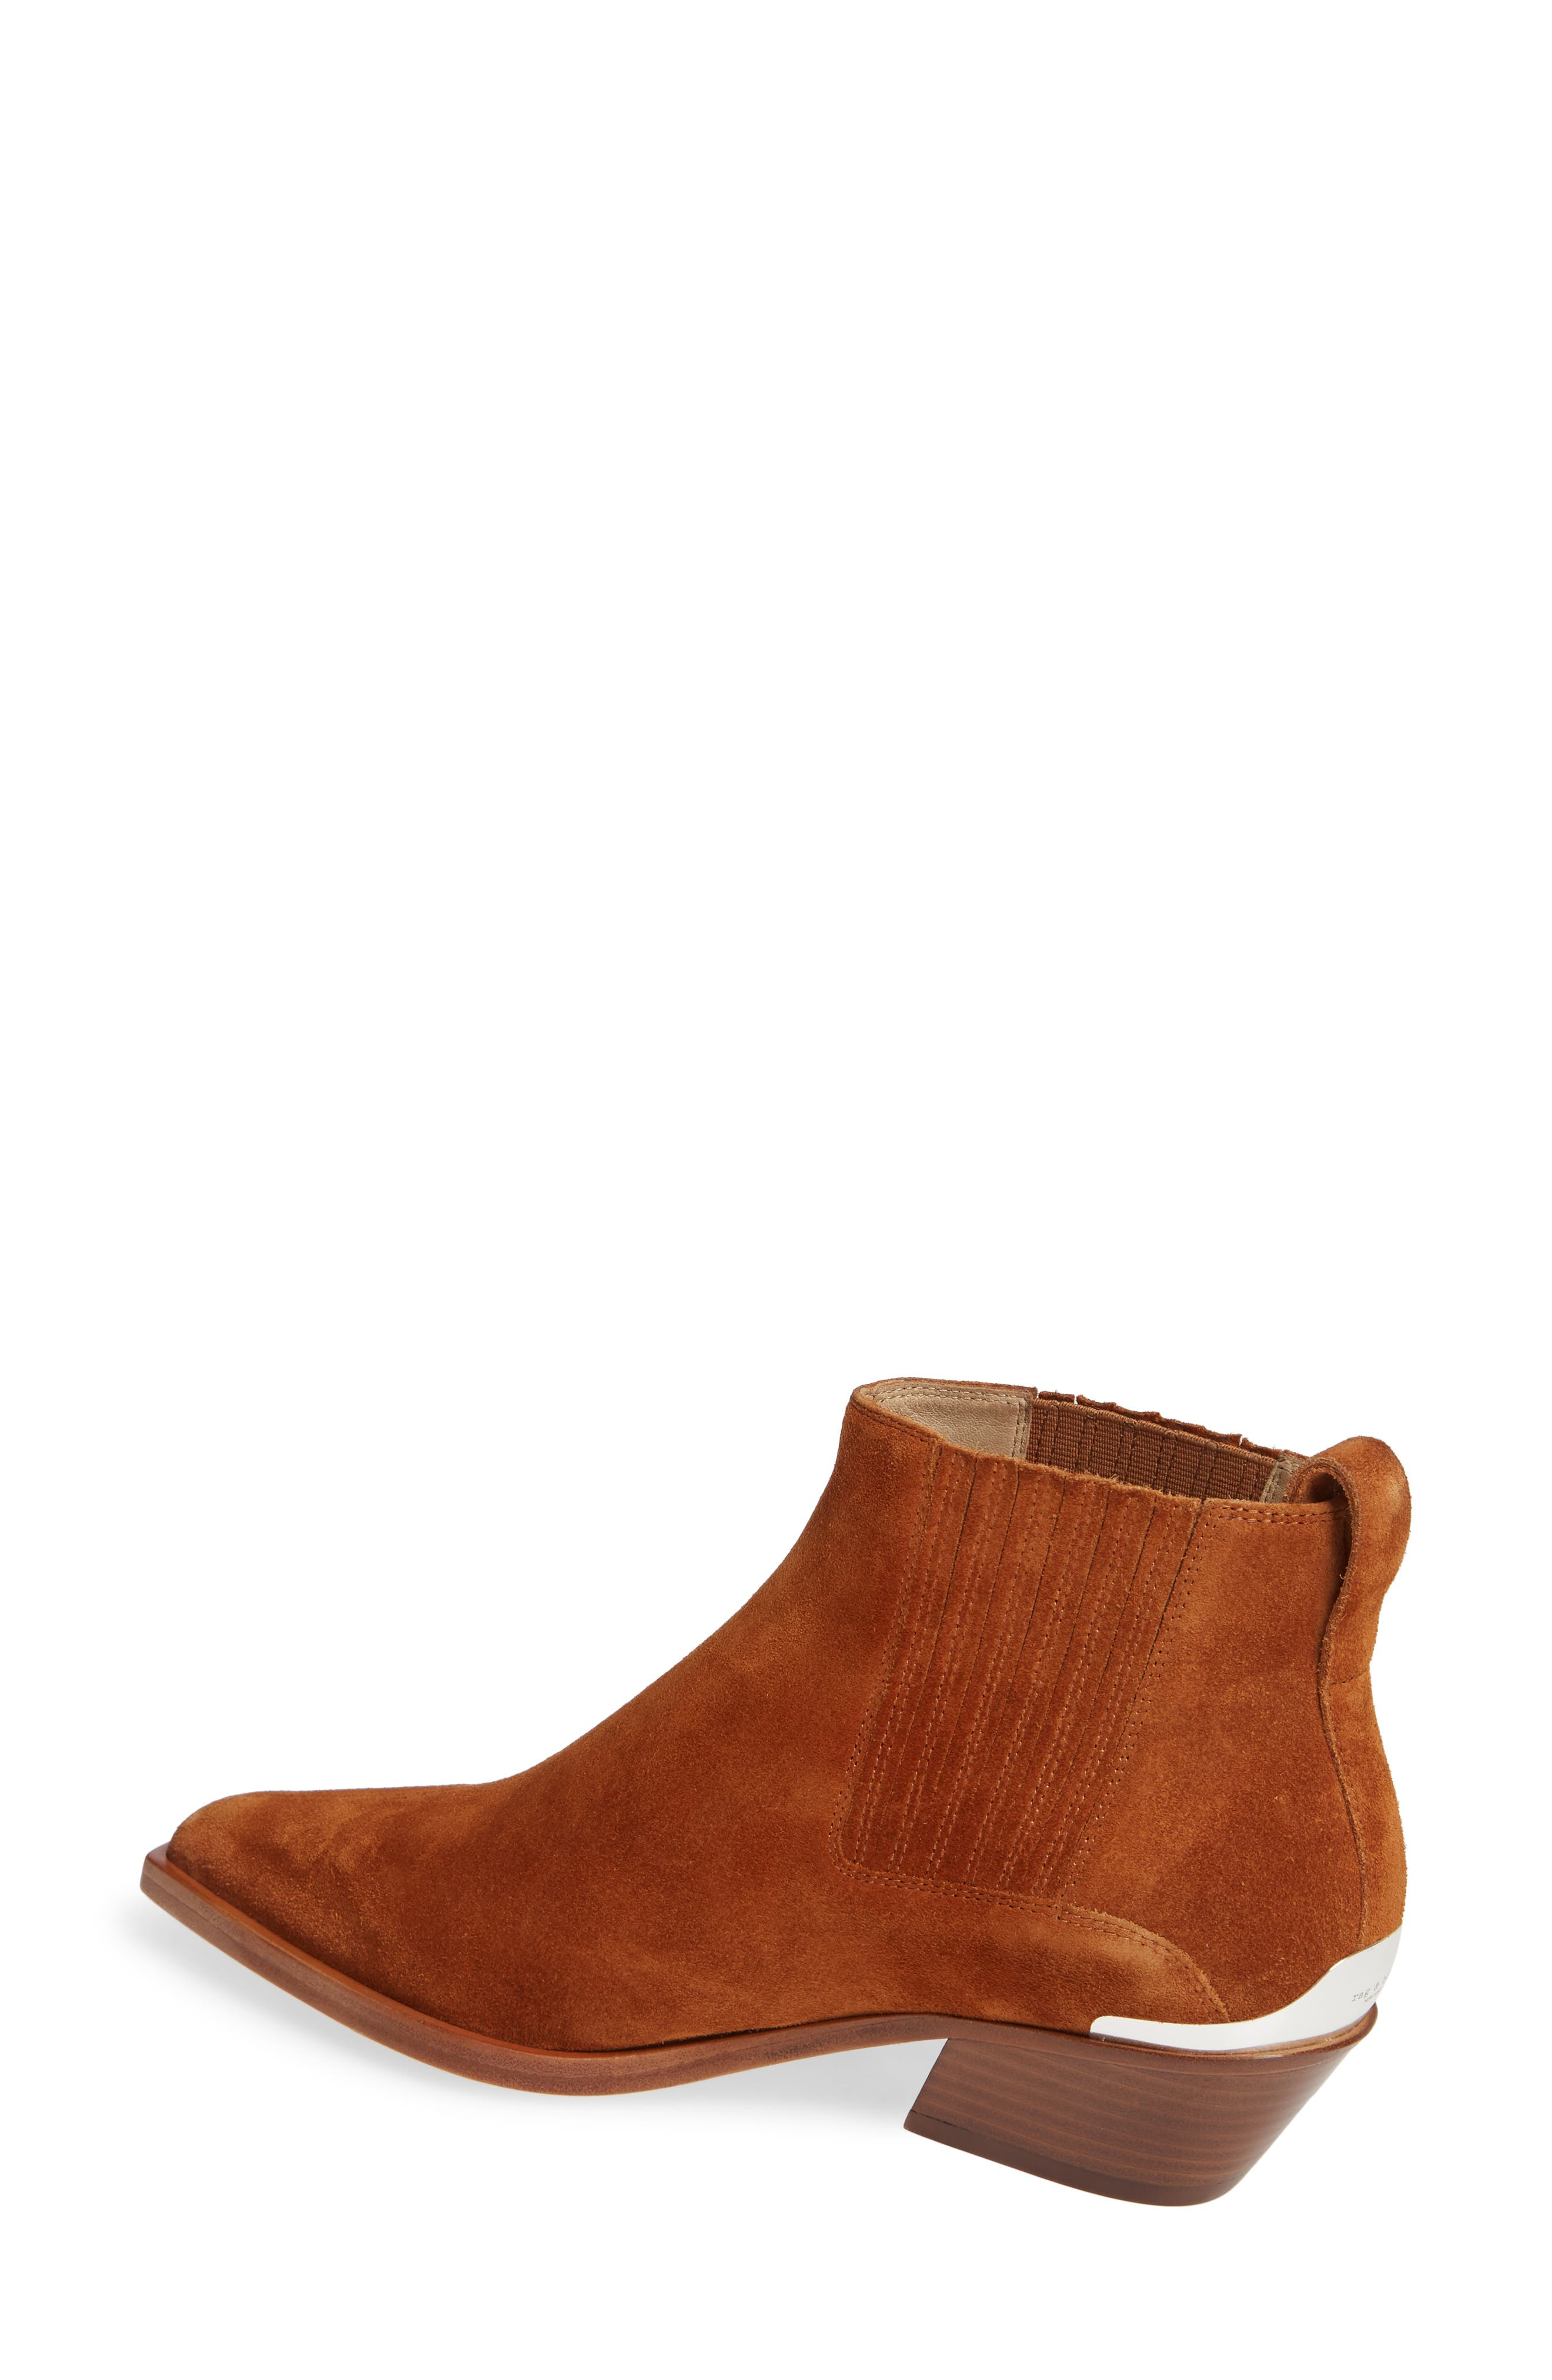 Westin Bootie,                             Alternate thumbnail 2, color,                             TAN SUEDE